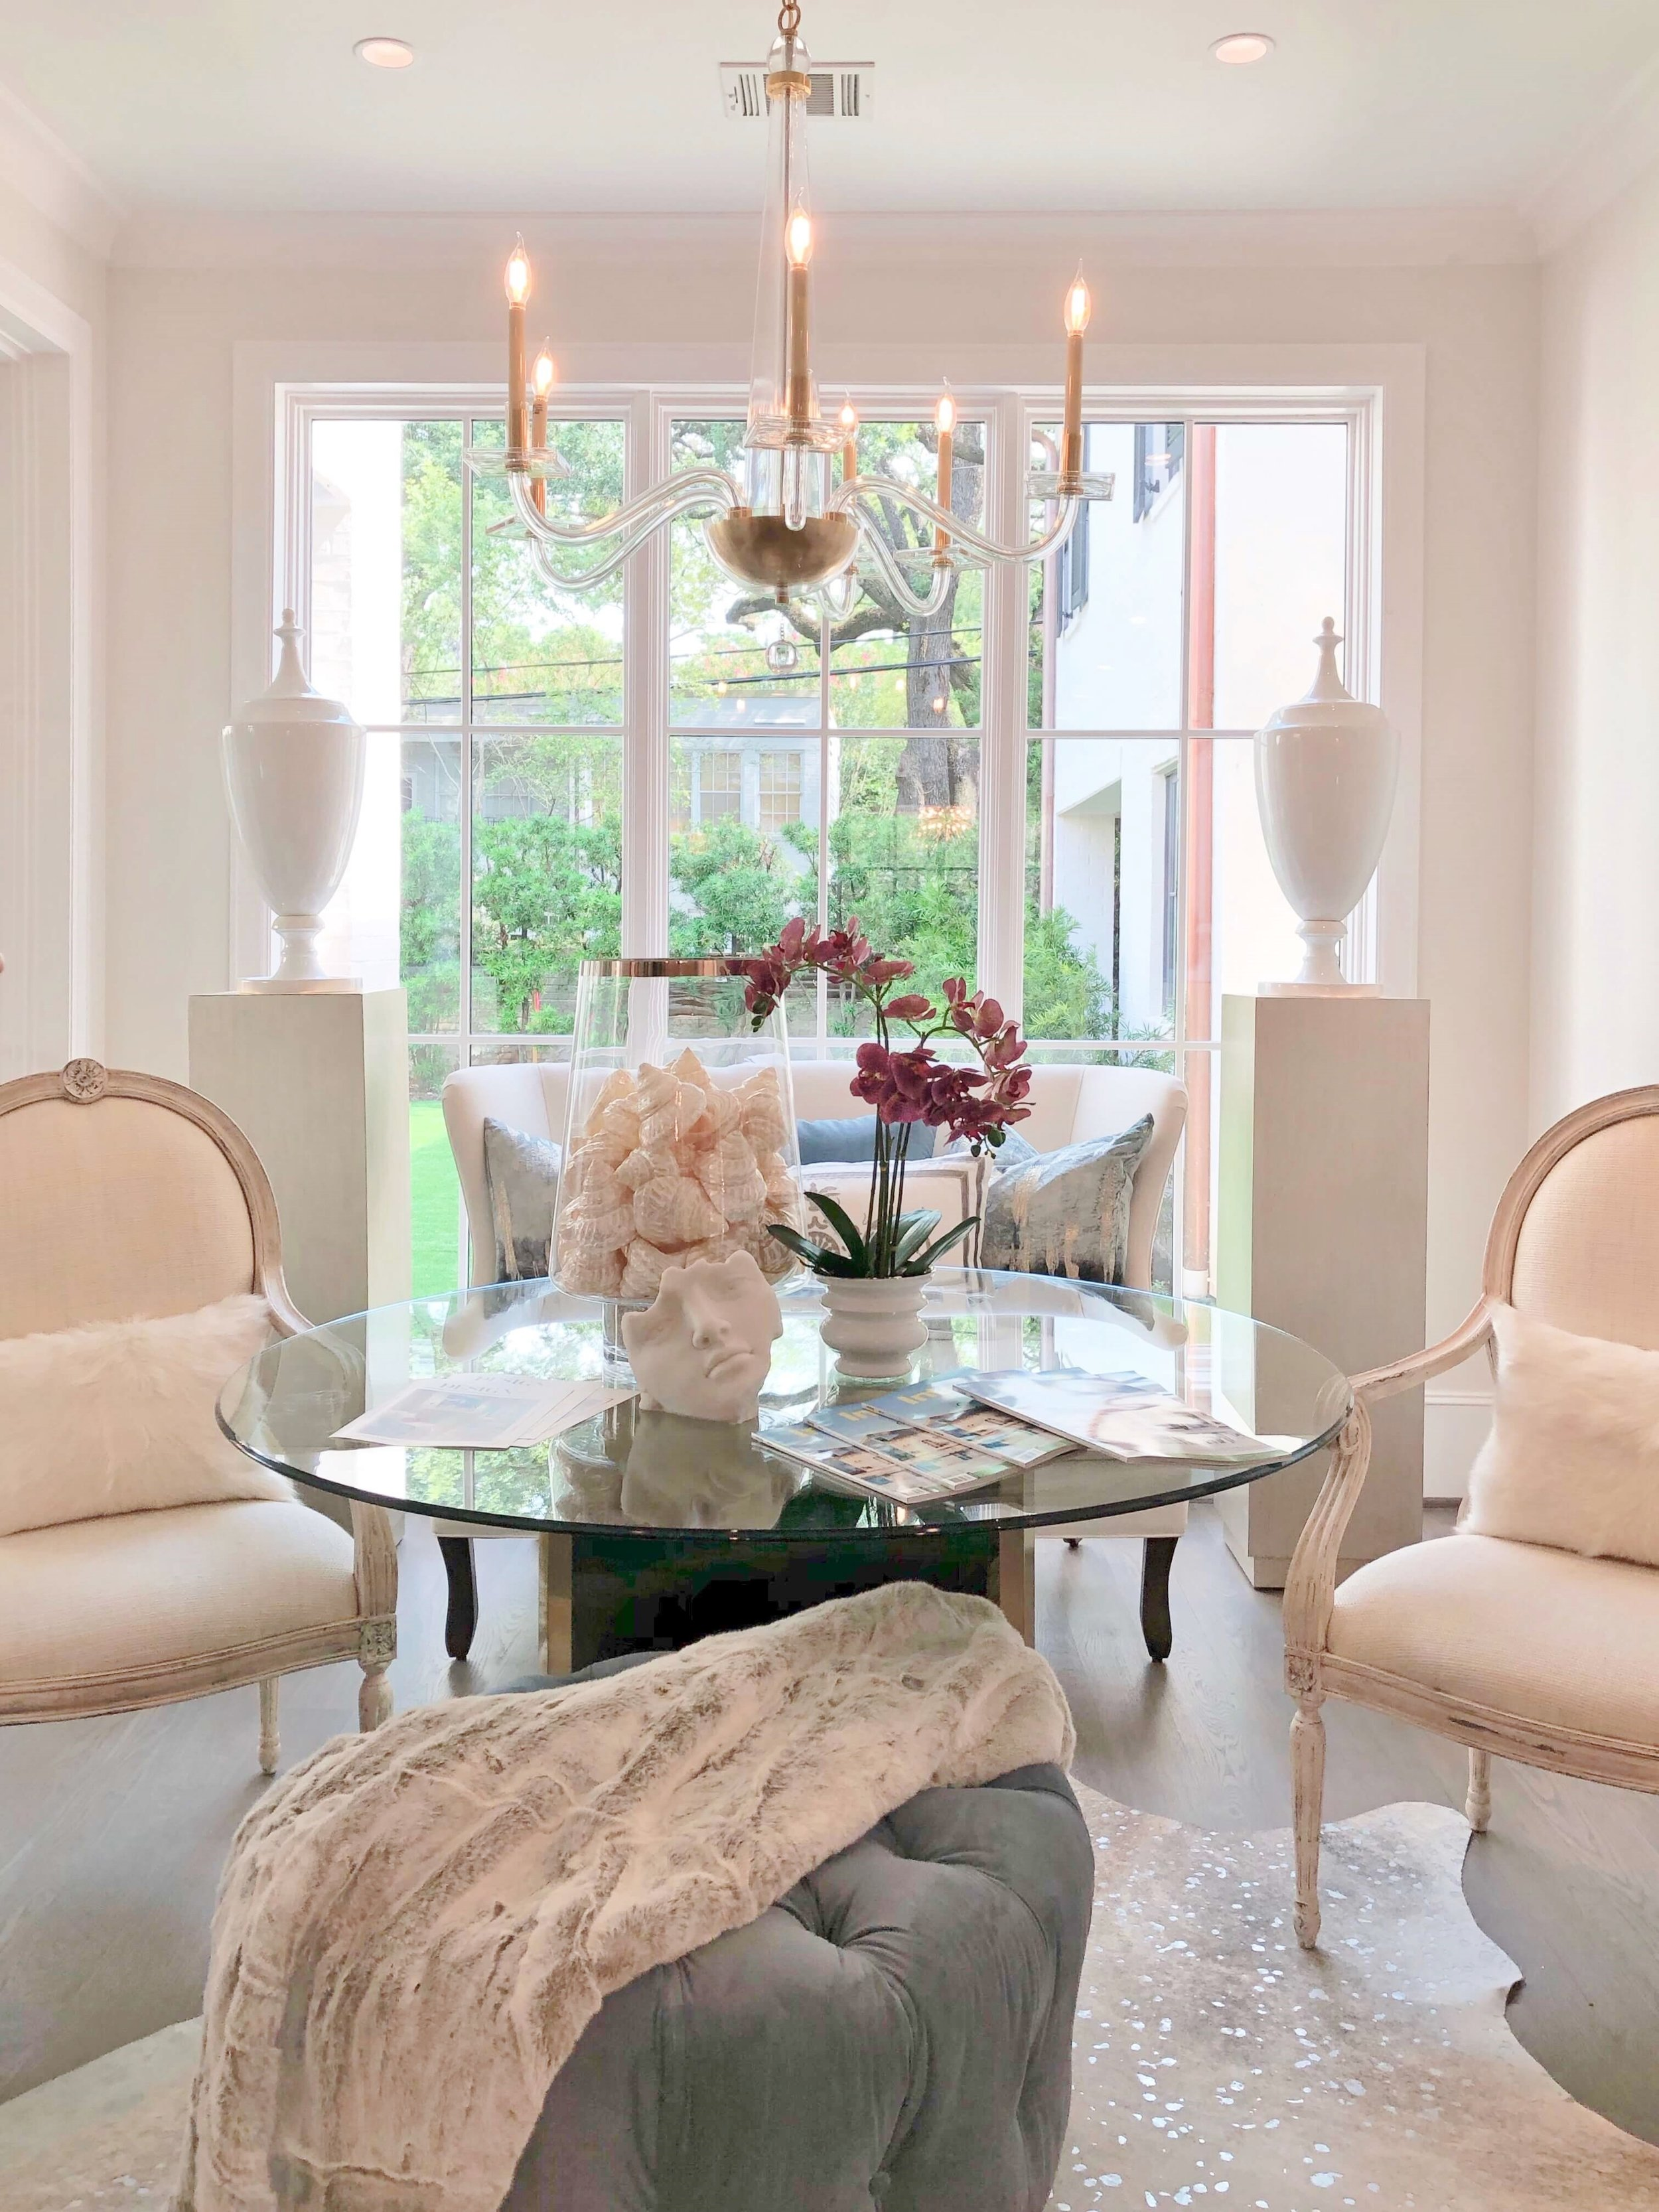 The breakfast area had a glamorous look with the velvet tufted ottoman, silver touches on the cowhide rug, and clear glass in the table top and chandelier. Lovely and light-filled, it was designed by The Design Firm. ASID Showhouse | #glamdecor #glasstable #velvetottoman #whitedecor